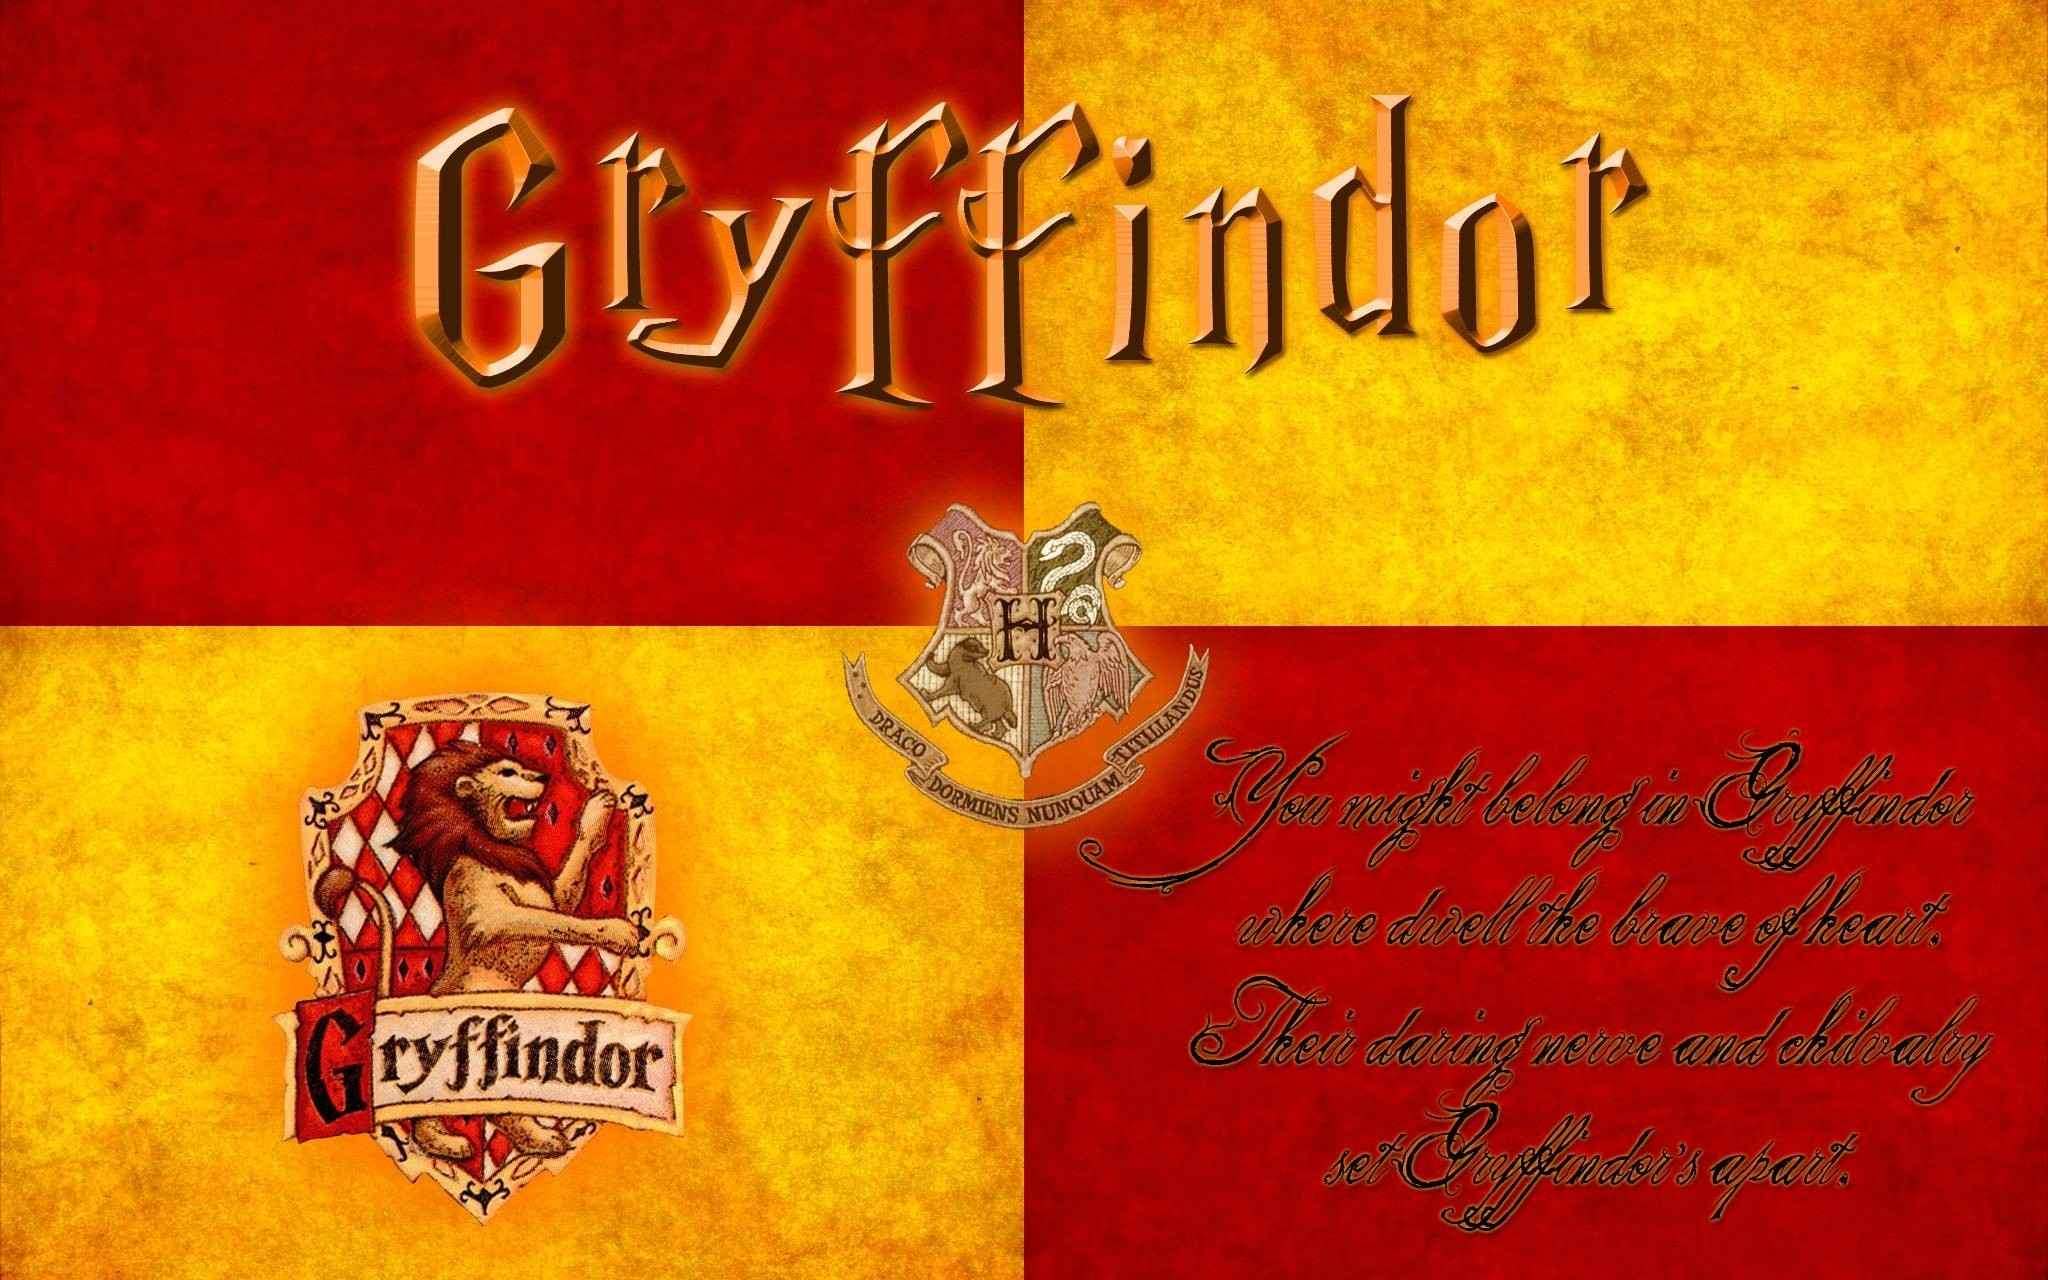 Res: 2048x1280, Title : gryffindor wallpapers – wallpaper cave. Dimension : 2048 x 1280.  File Type : JPG/JPEG